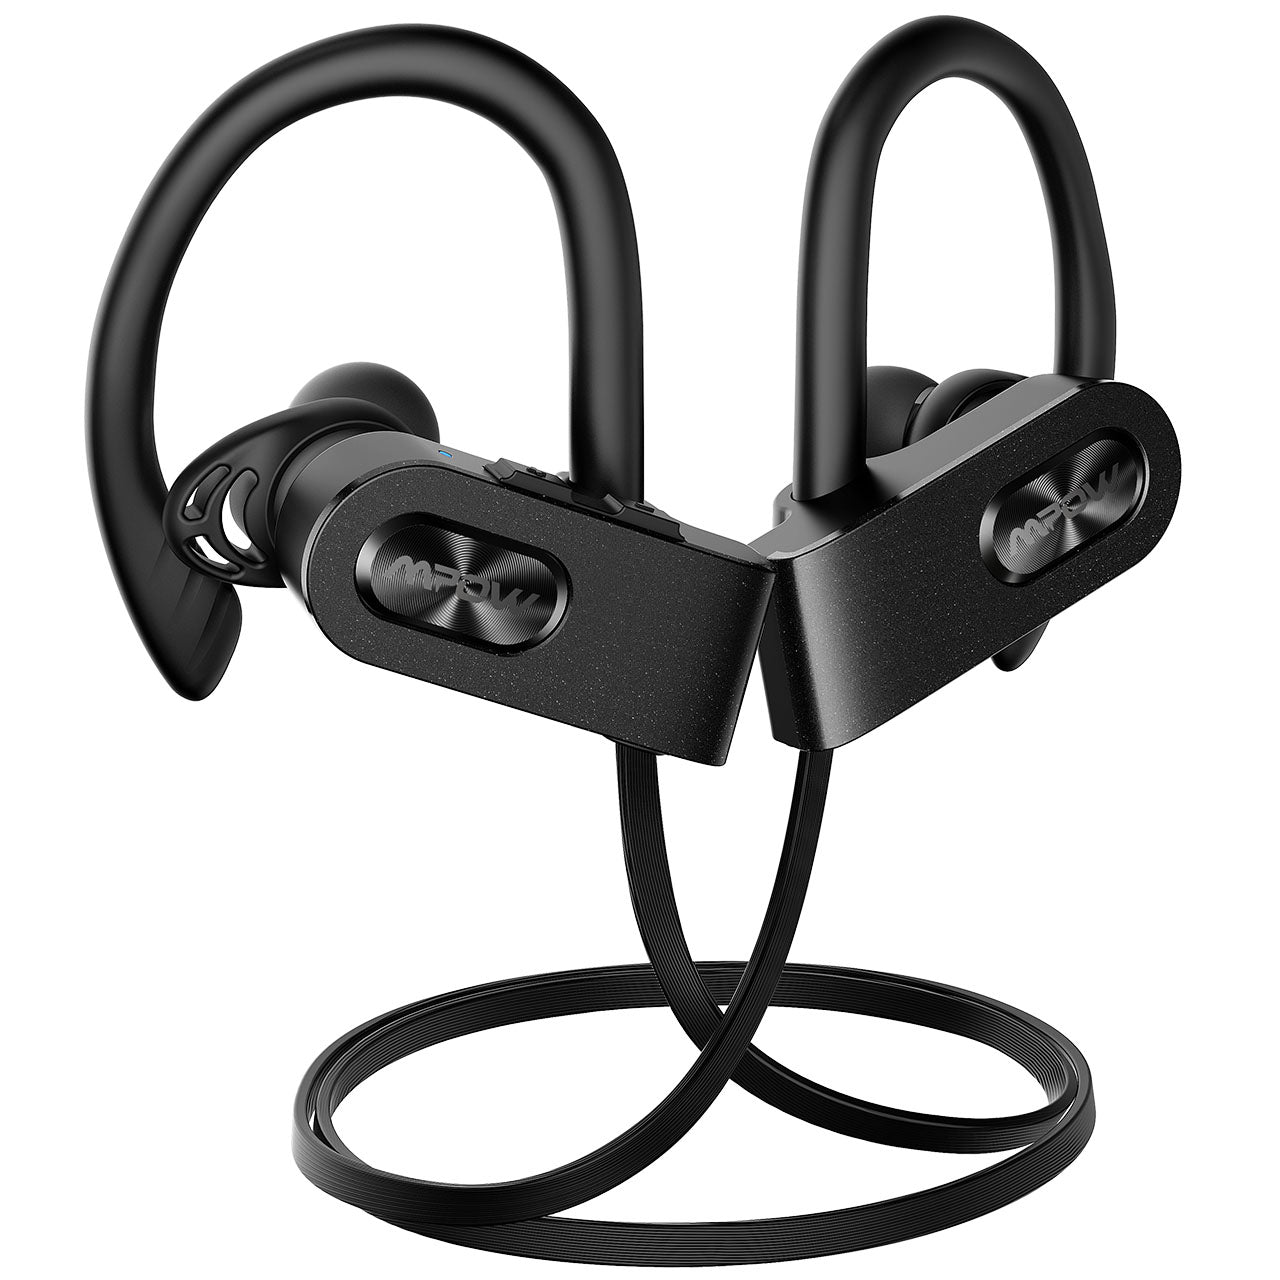 Mpow FLAME2 Bluetooth Headphones - Gears For Ears